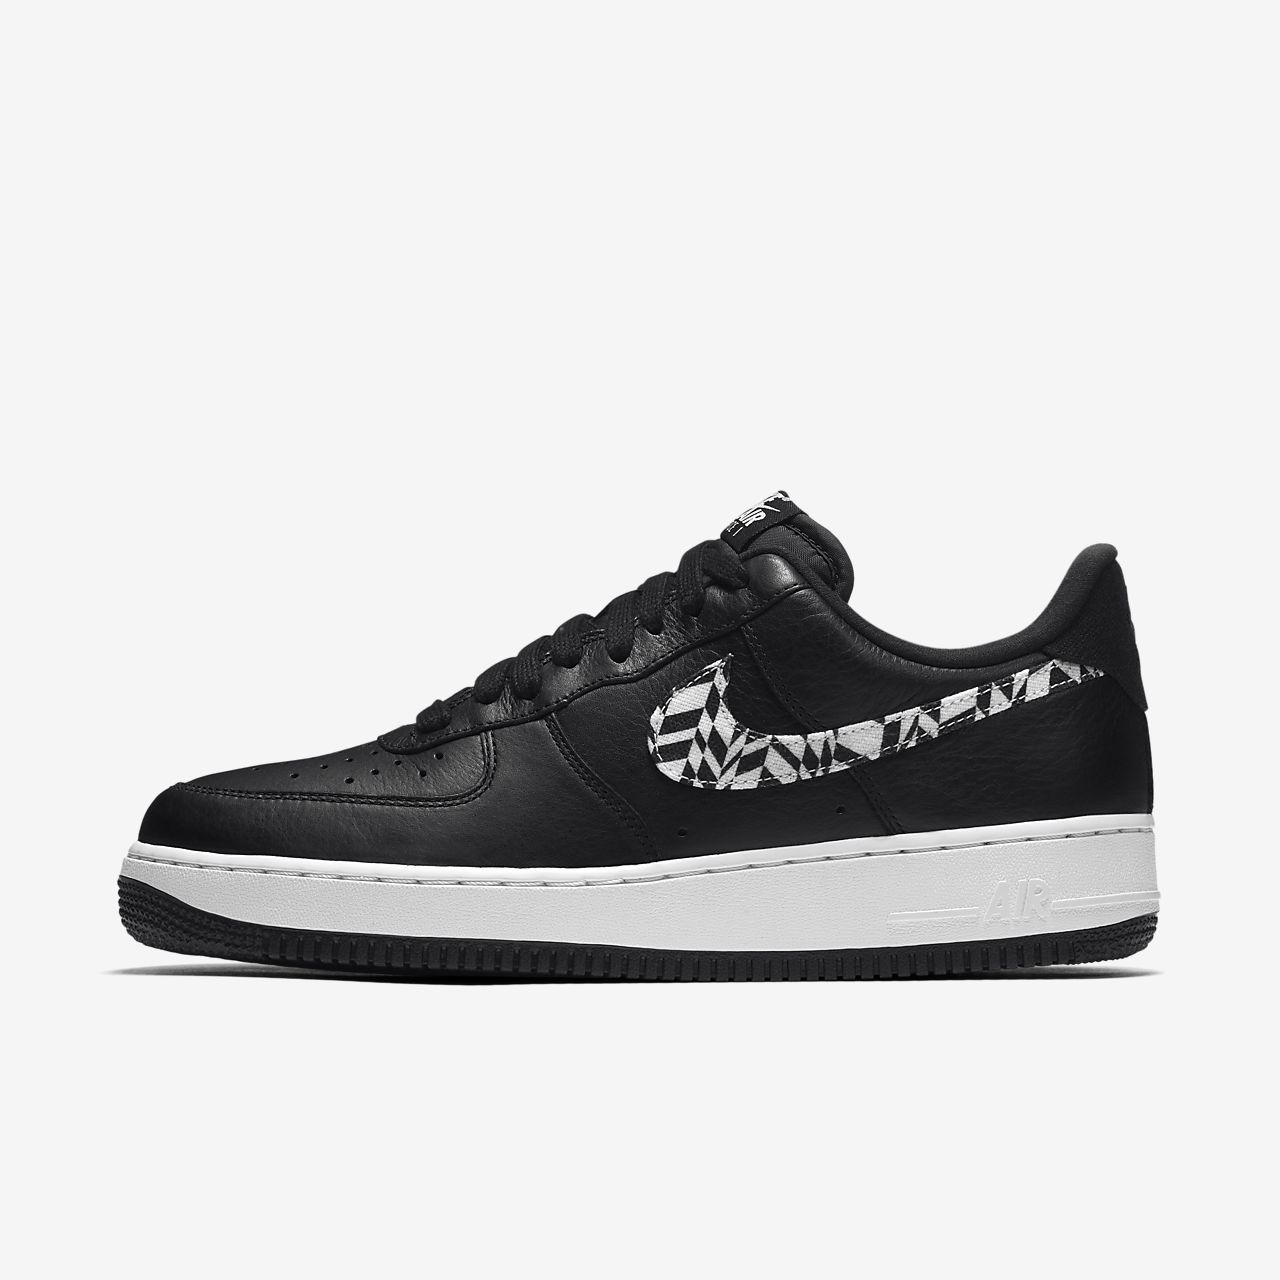 new style 36123 4f560 ... official store nike air force 1 premium mens shoe 8a6ff fdcac